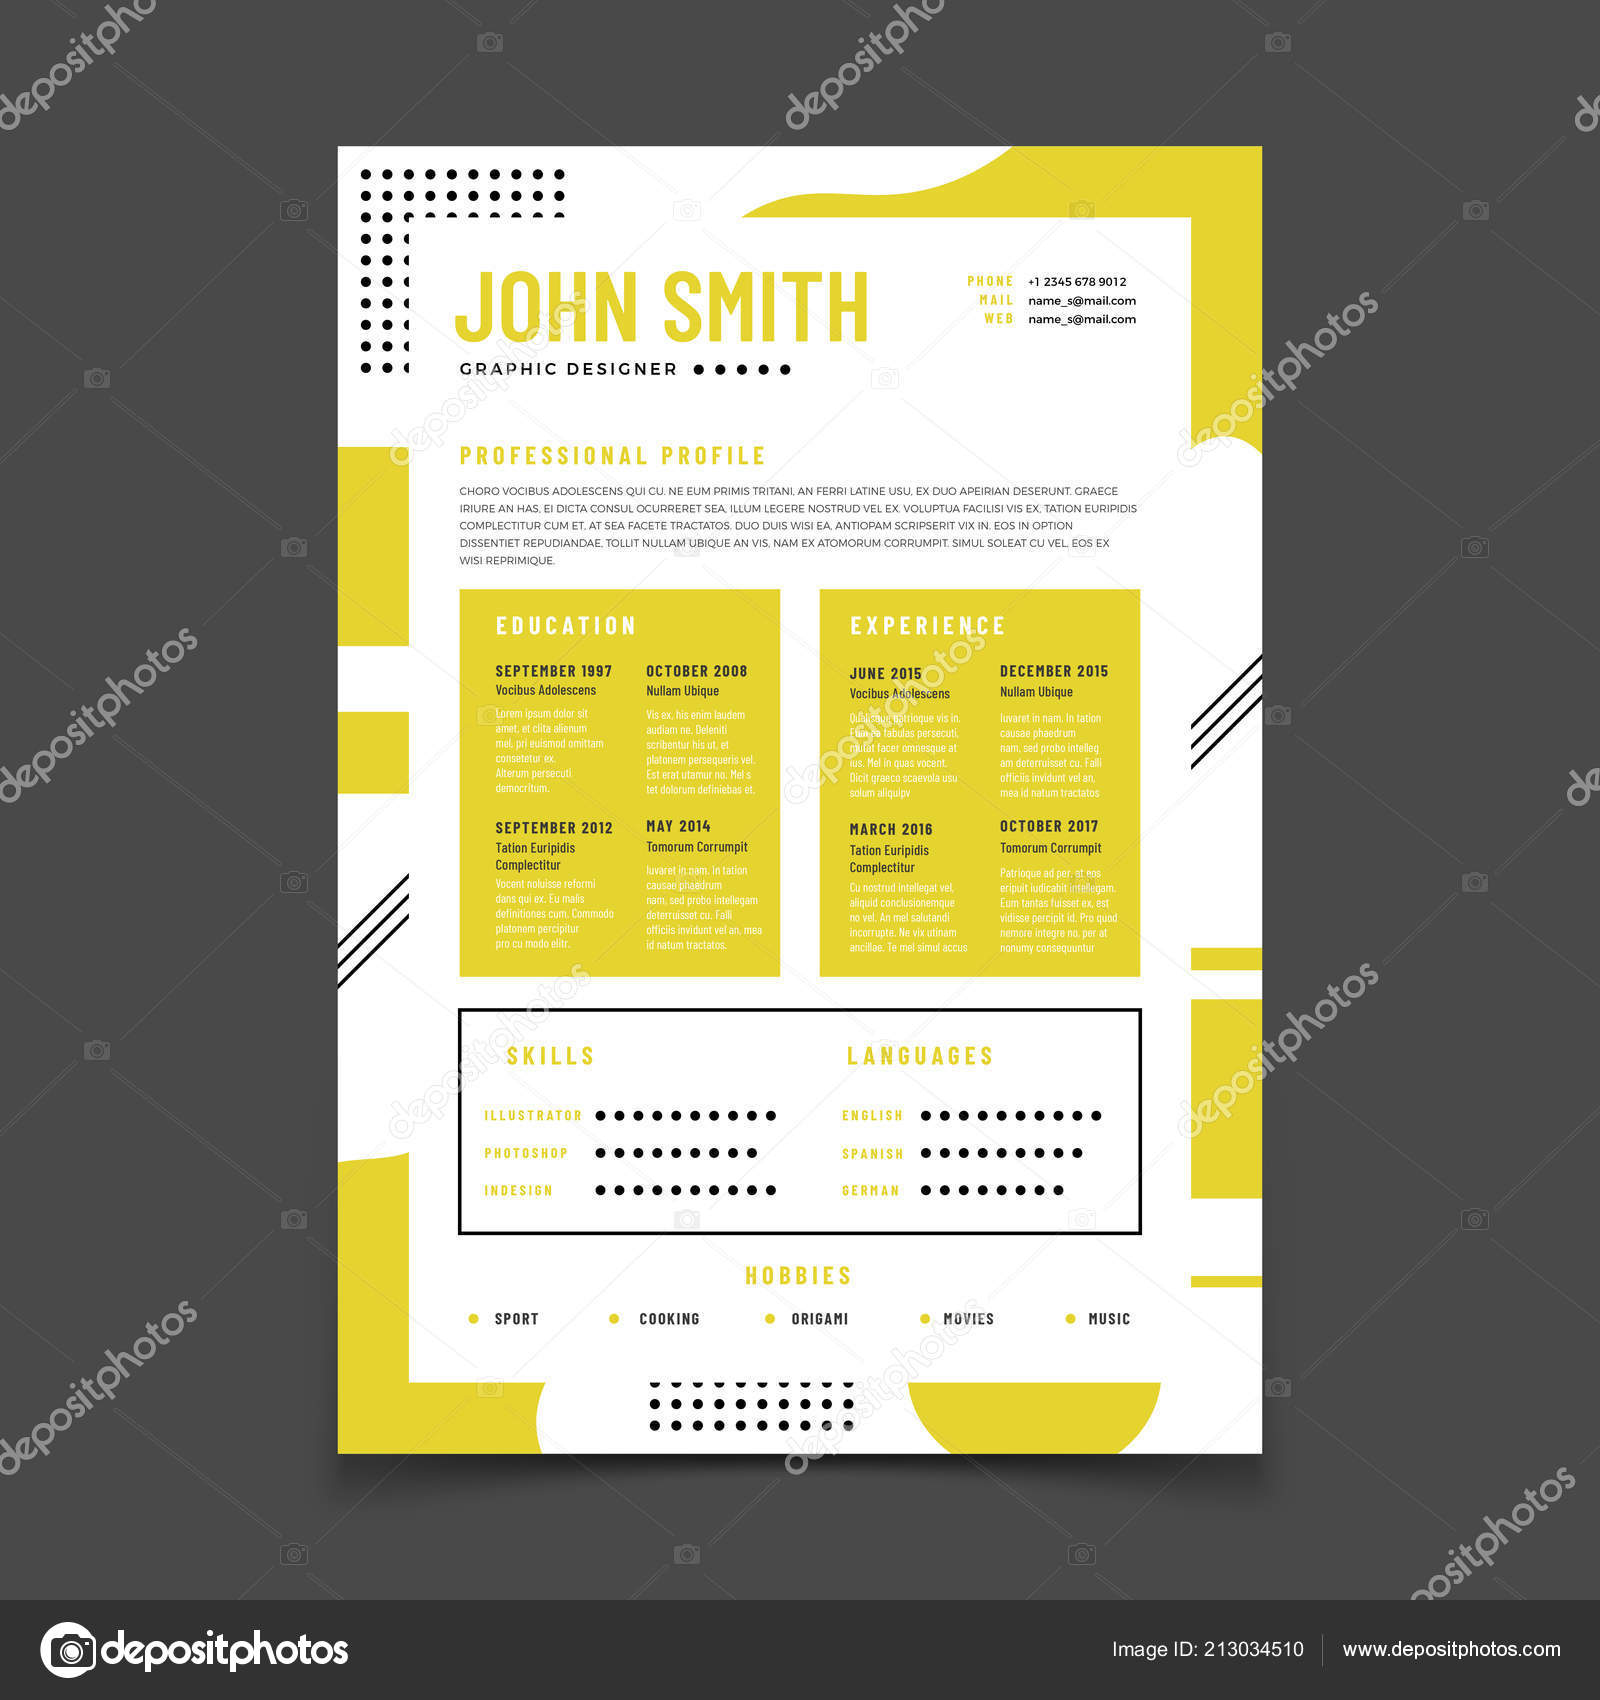 Cv Design Professional Resume With Business Details Curriculum And Best Job Vector Infographic Mockup Stock Illustration